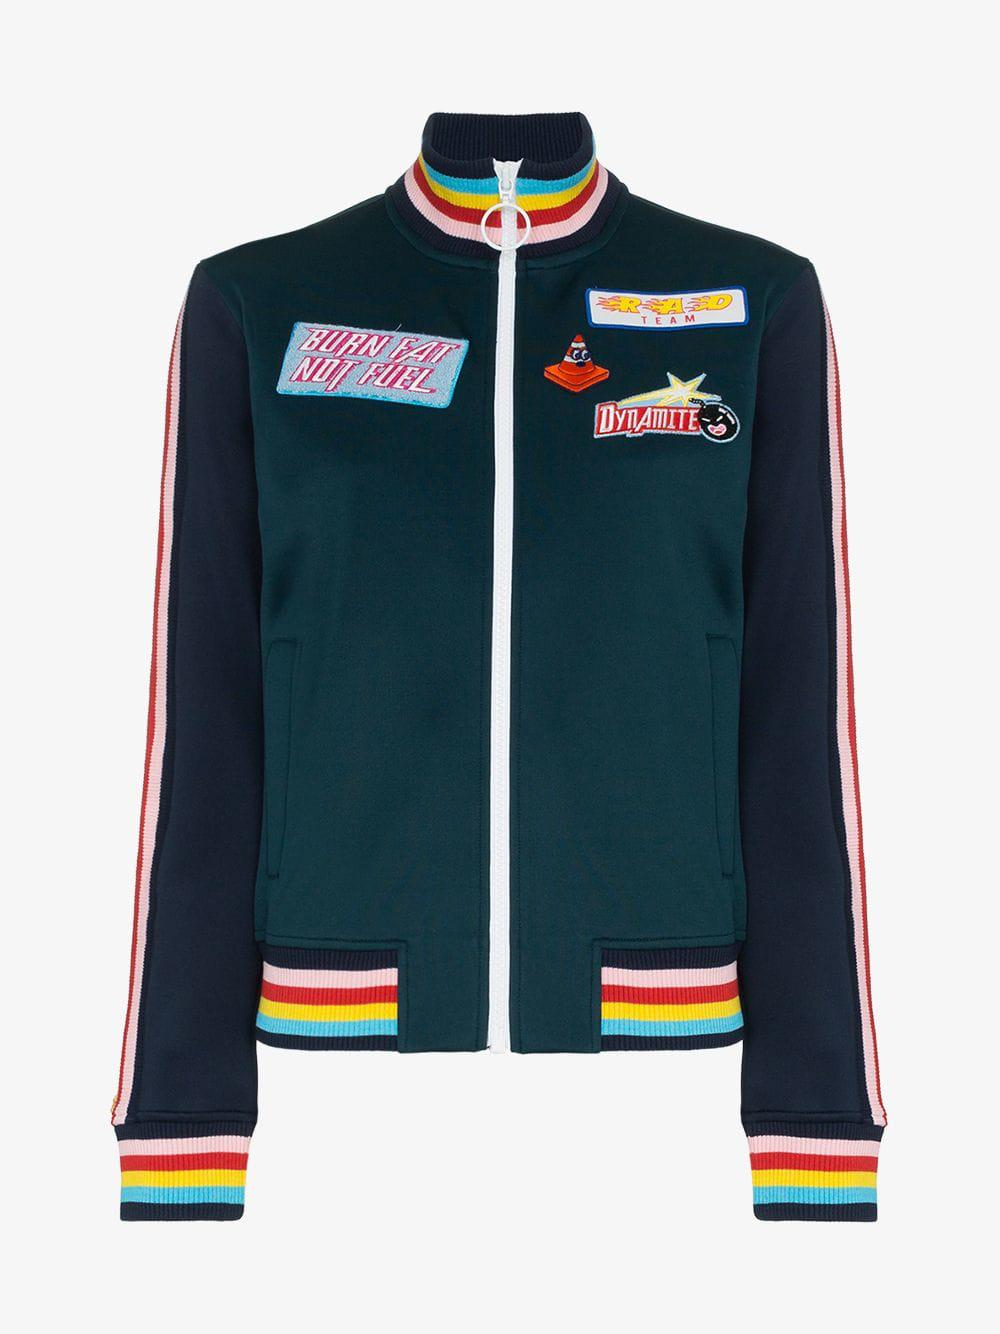 Fullscreen Green Lyst Embroidered View Jacket Patch Mira Bomber Mikati  87w5axqZ 7374c1c8d11a